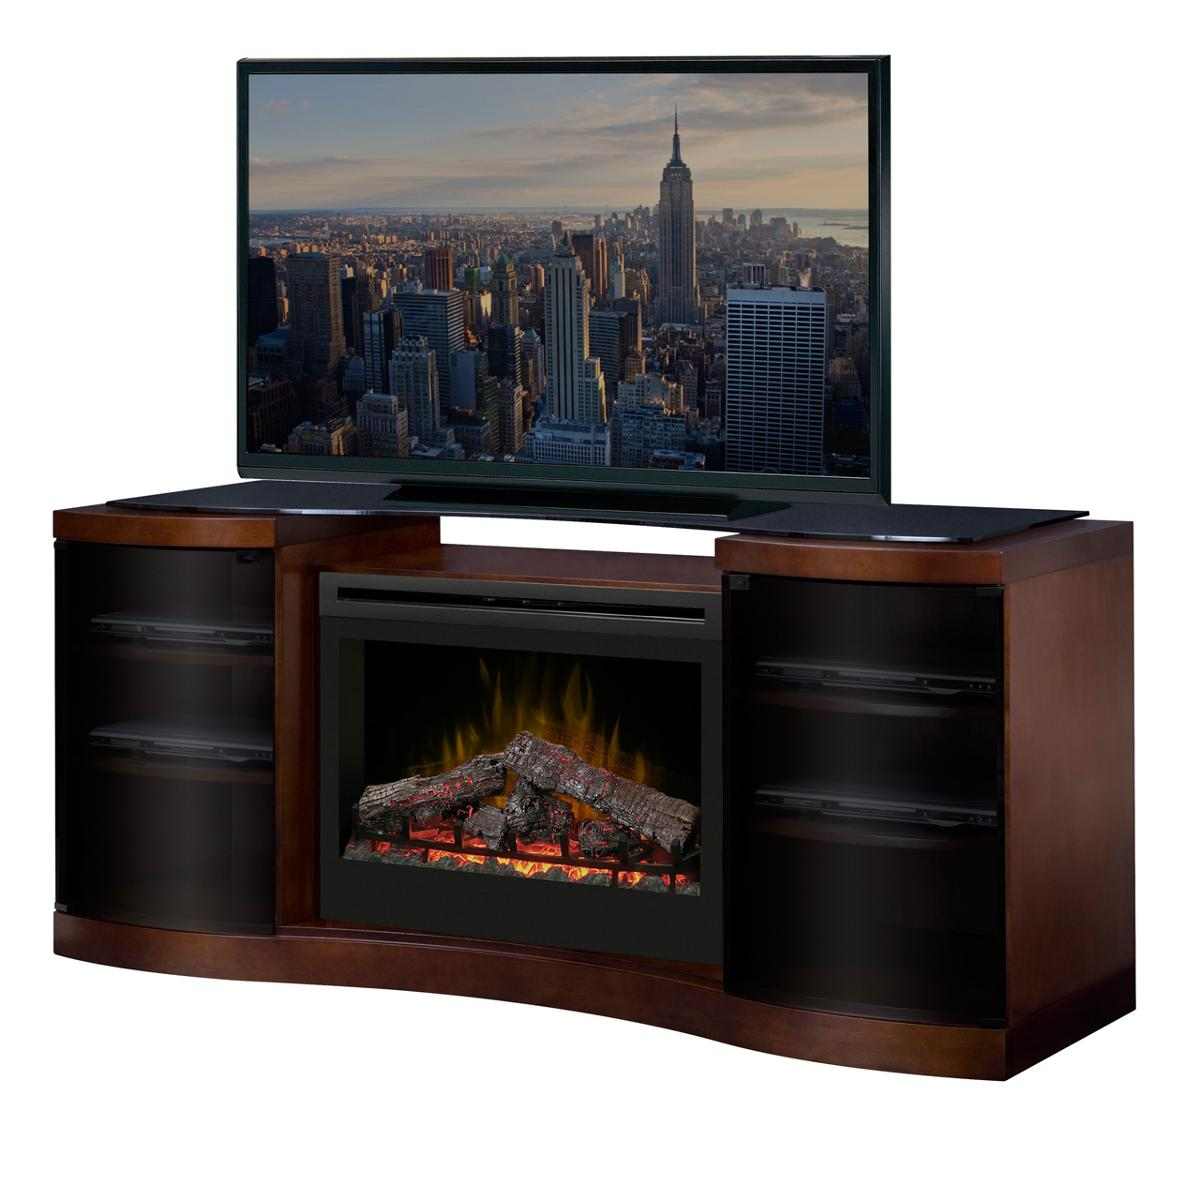 electric fireplace store - Long Island, NY